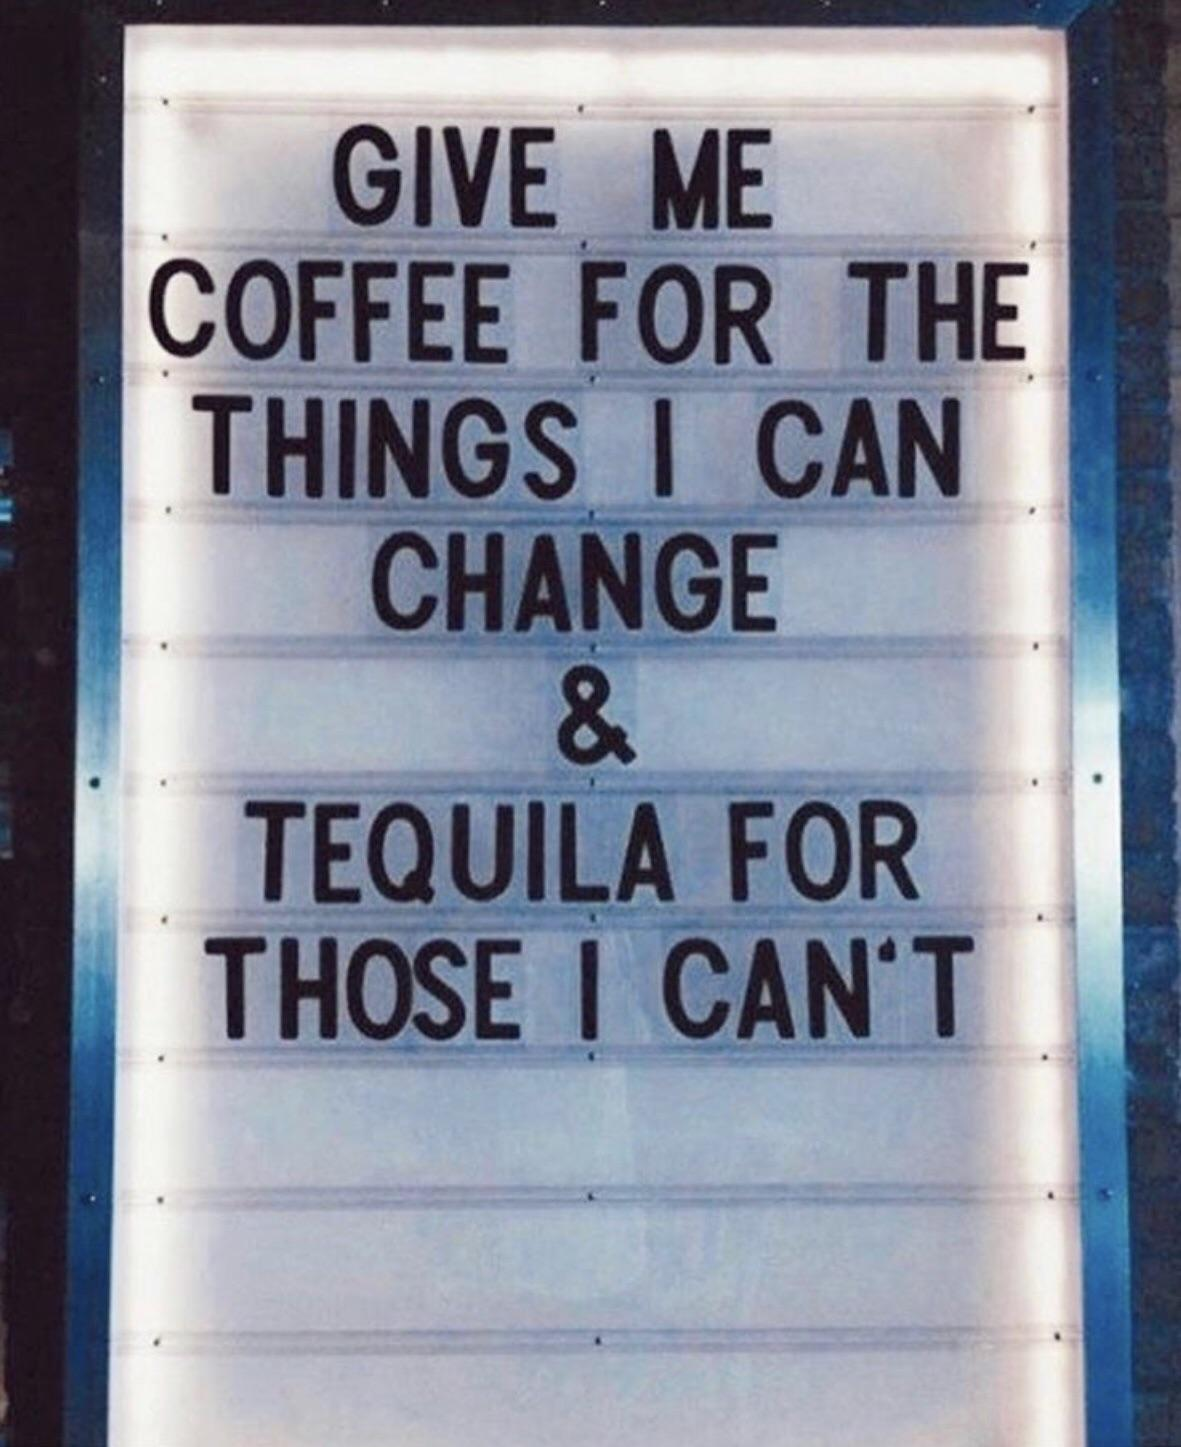 GIVE ME COFFEE FOR THE . . THINGS I CAN CHANGE , 8. . , ' TEQUILA FOR THOSE I https://inspirational.ly